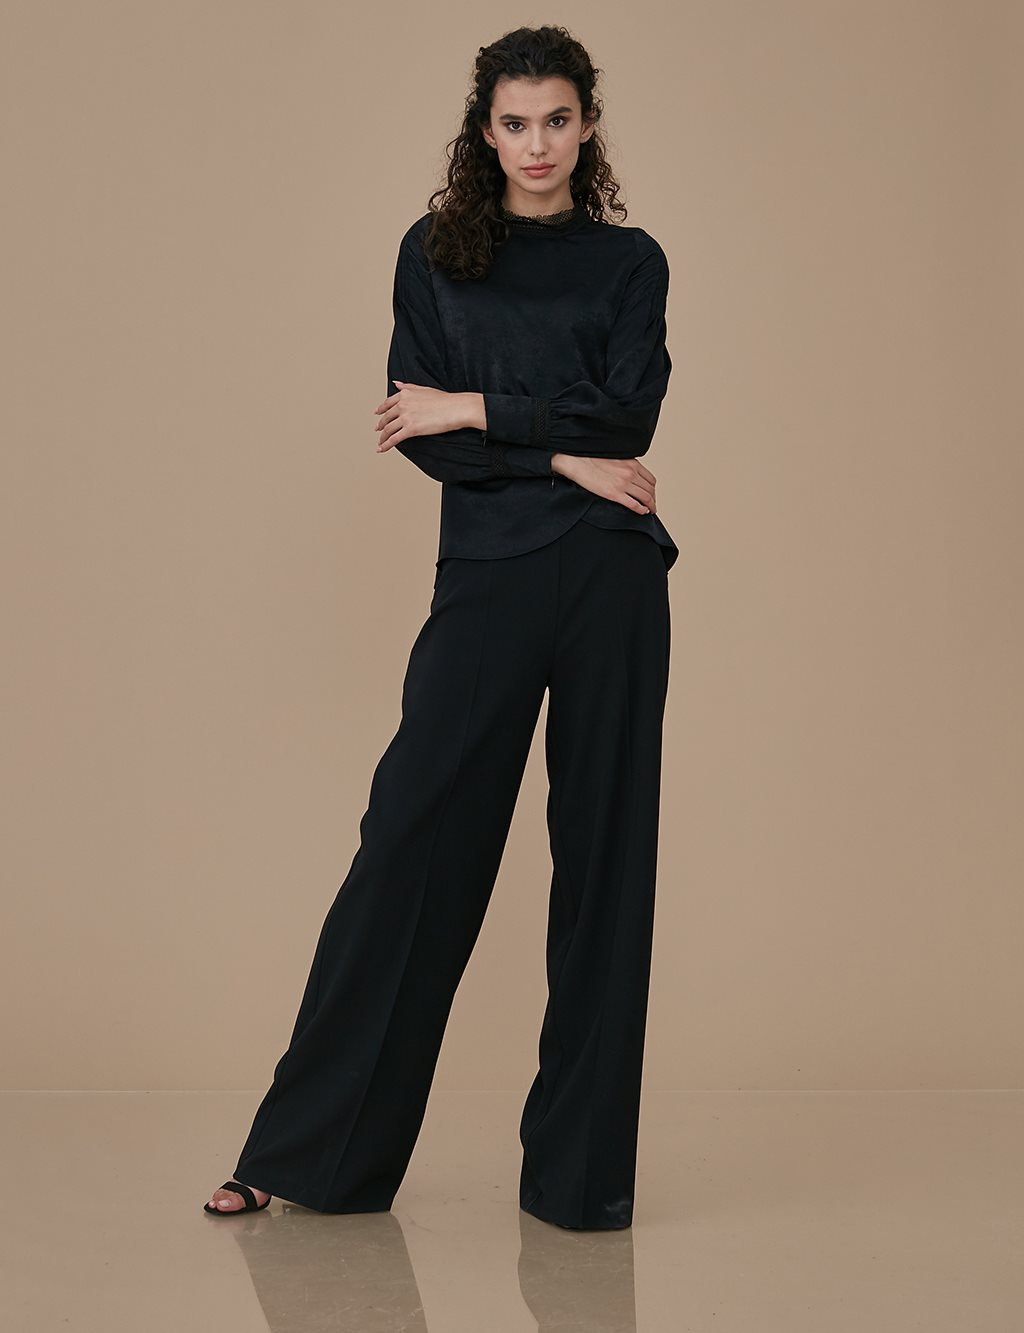 Wide Leg Pants A9 19025 Black